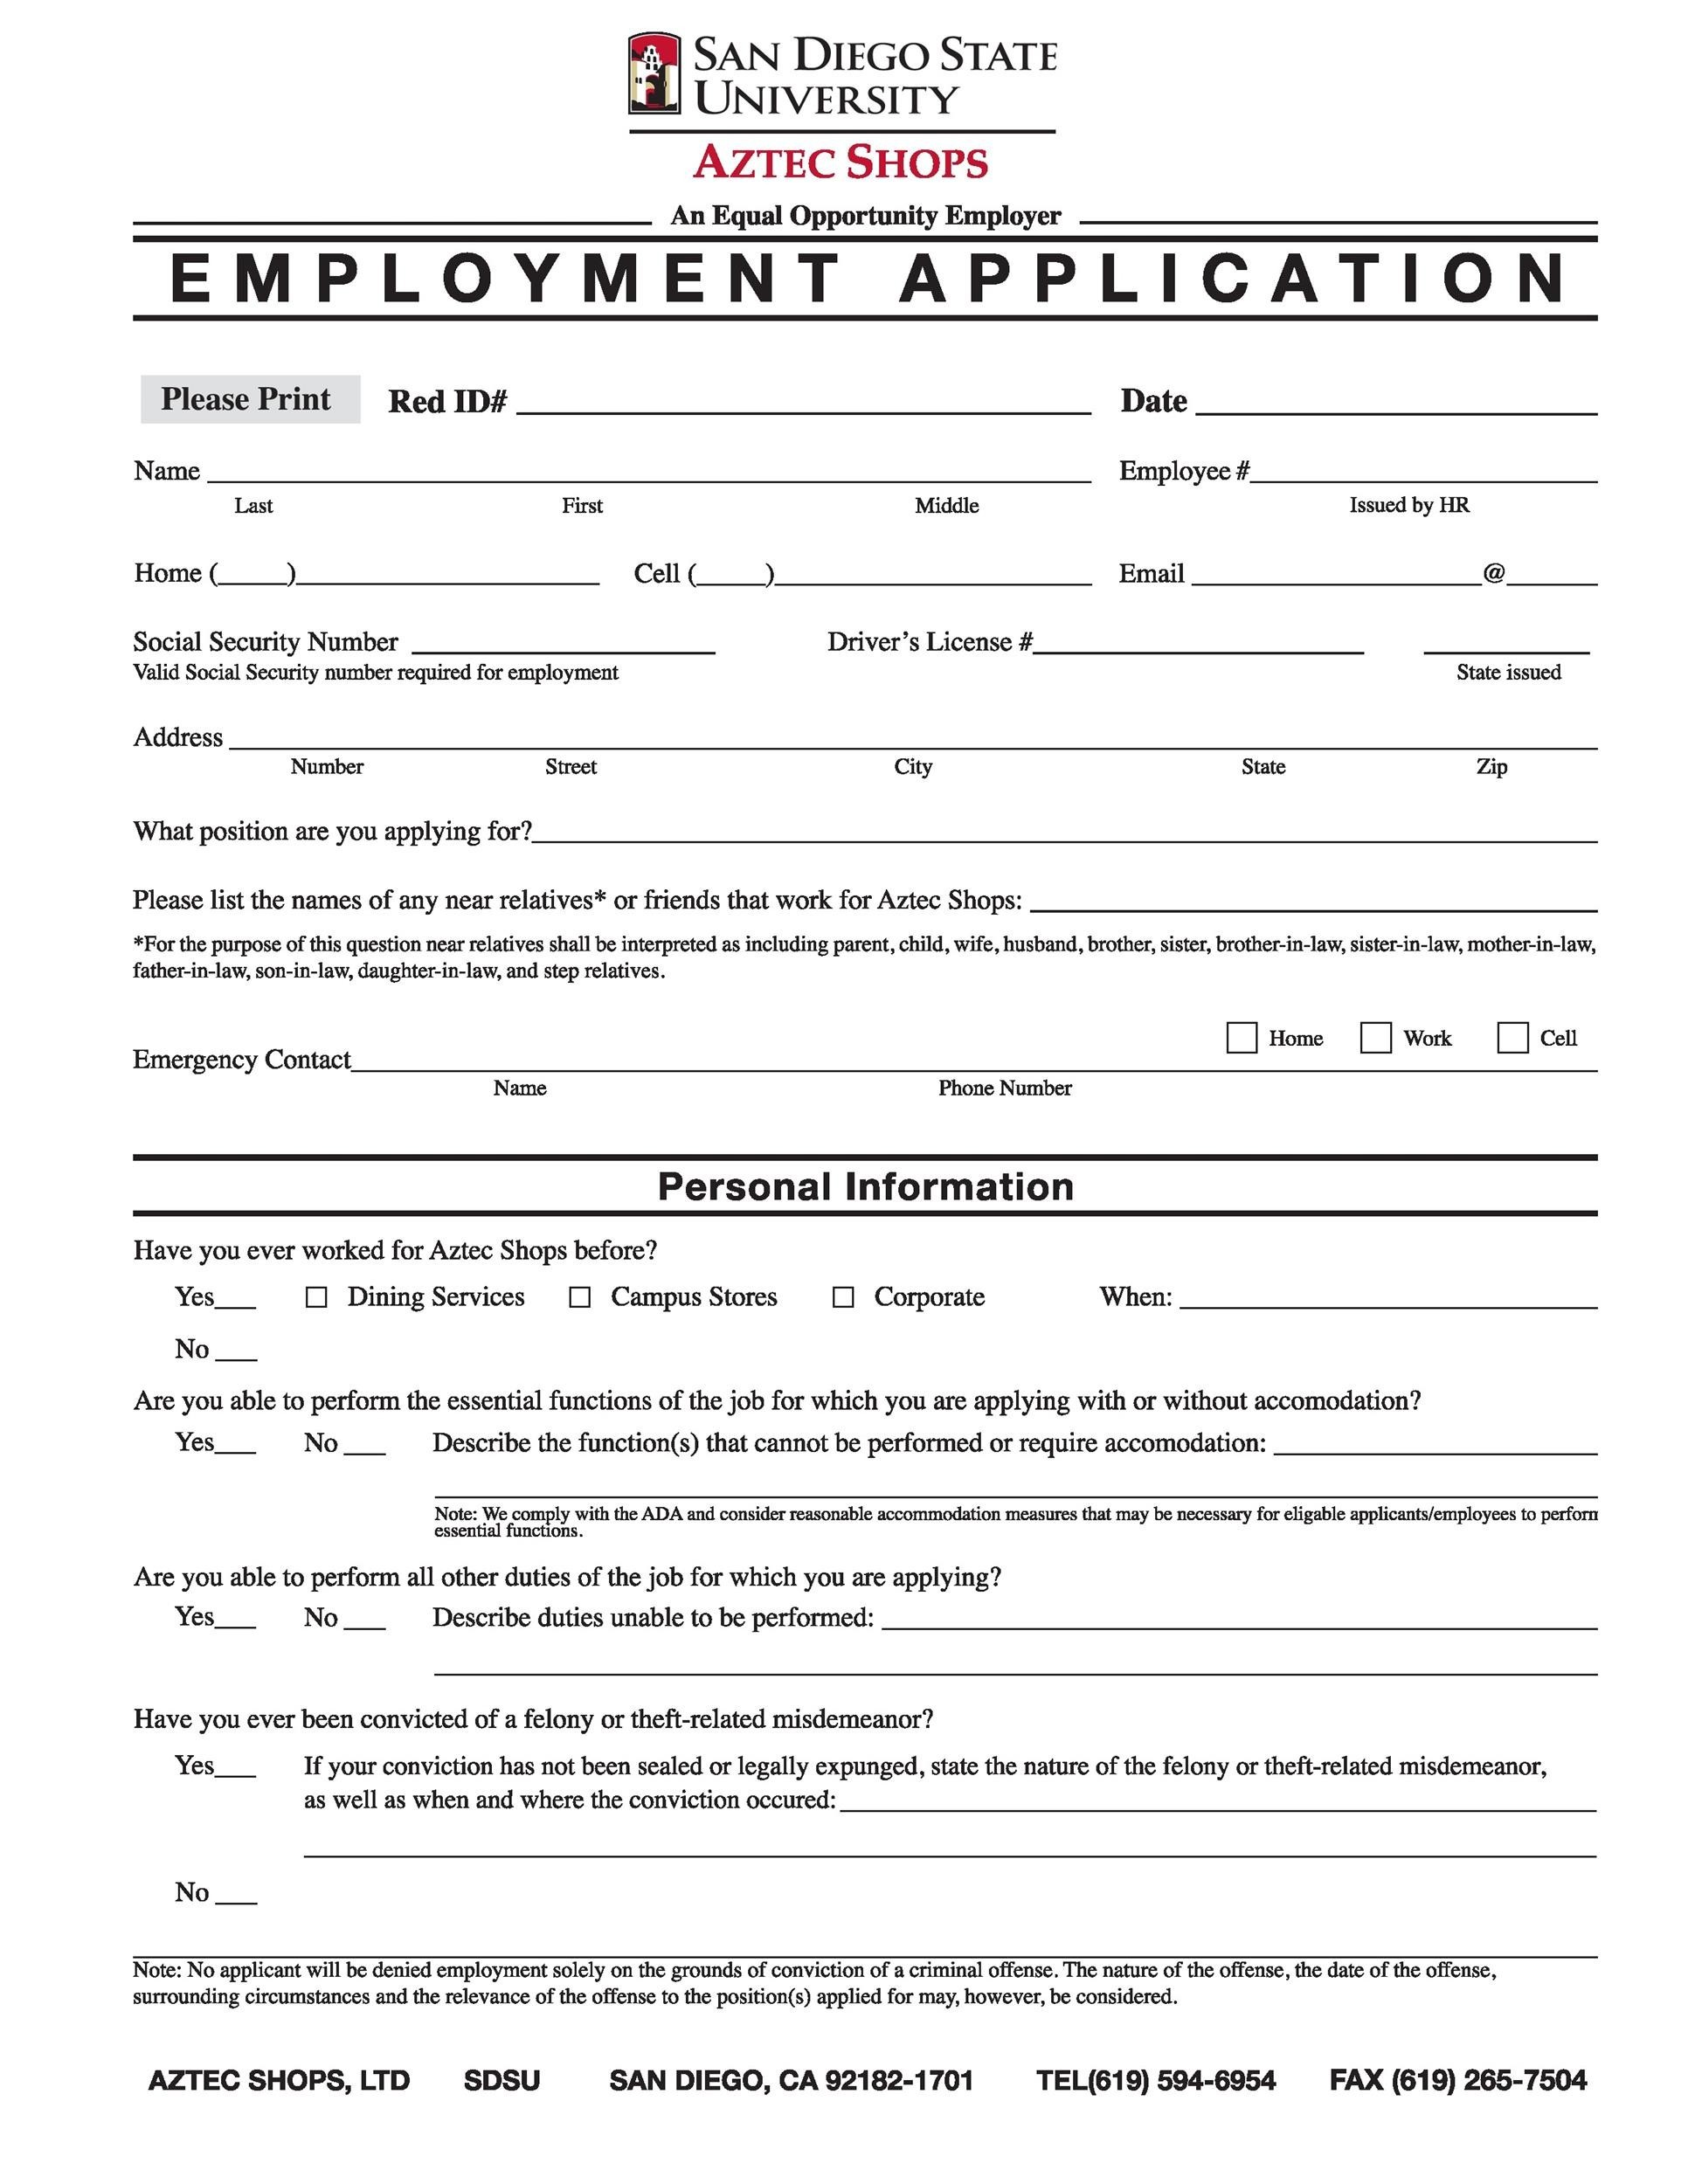 employment-application-template-28 Job Forms on bill of lading forms, invoice forms, purchase order forms, tax forms, claim forms, expense forms, personnel forms, statement forms, correspondence forms, proposal forms, receiving forms,